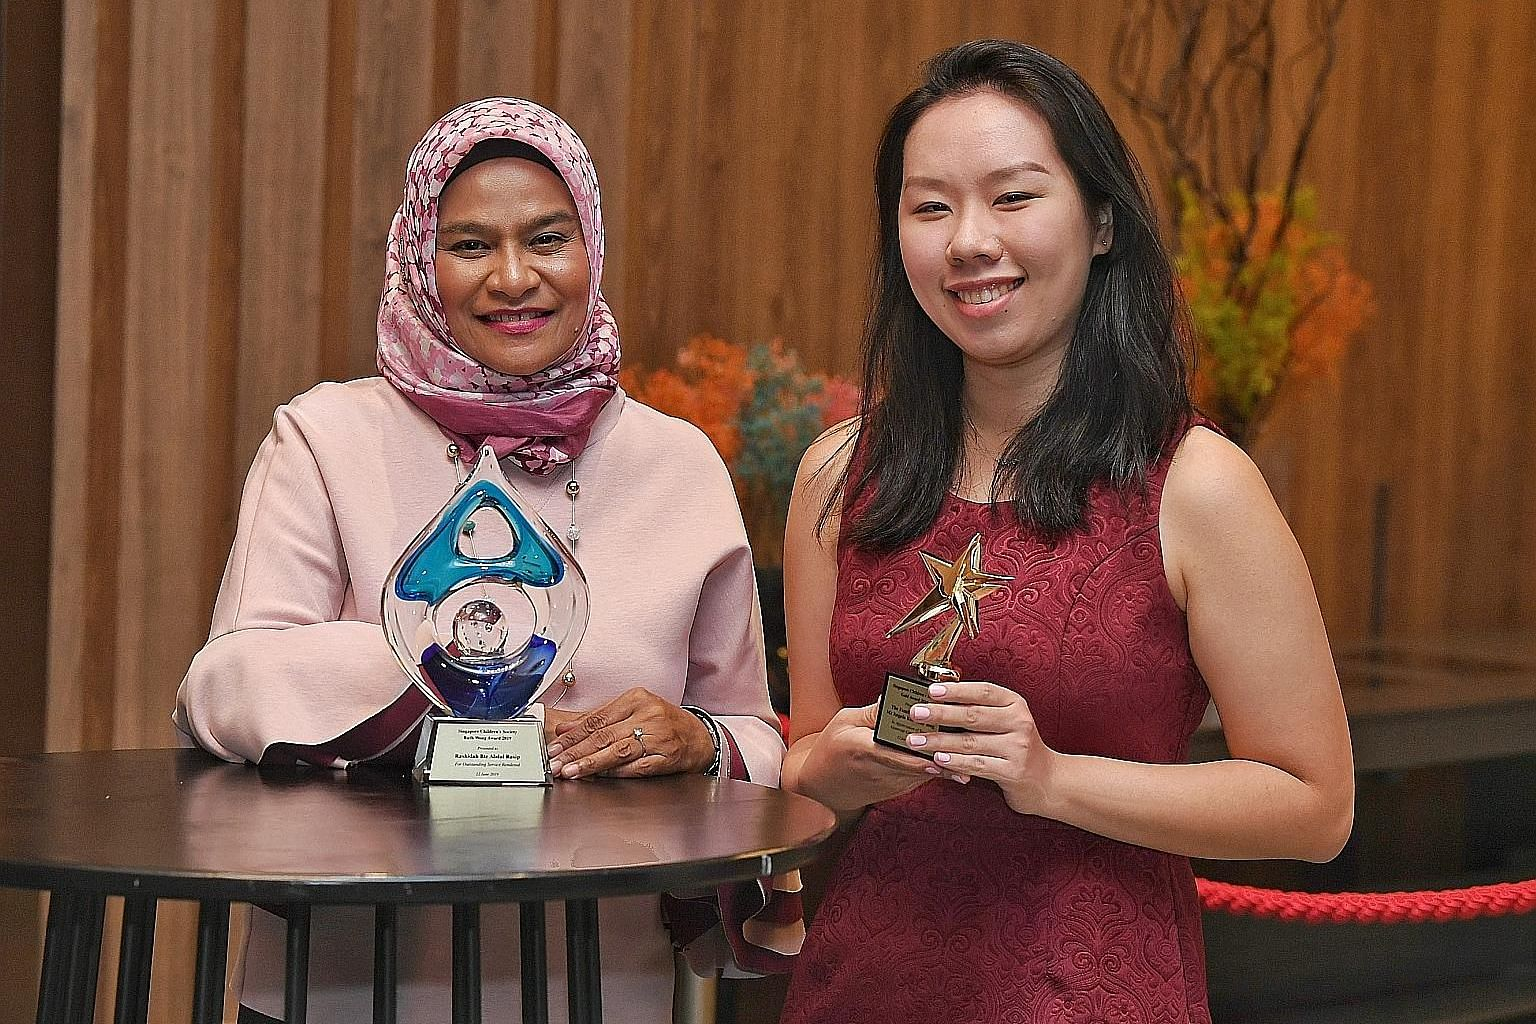 Long-time volunteer Rashidah Abdul Rasip was awarded the Singapore Children's Society's prestigious Ruth Wong Award, while Ms Go Li Jia collected the gold award on behalf of her late aunt, Ms Angela Koh Chay Yong, who died in 2017 and left $50,000 to